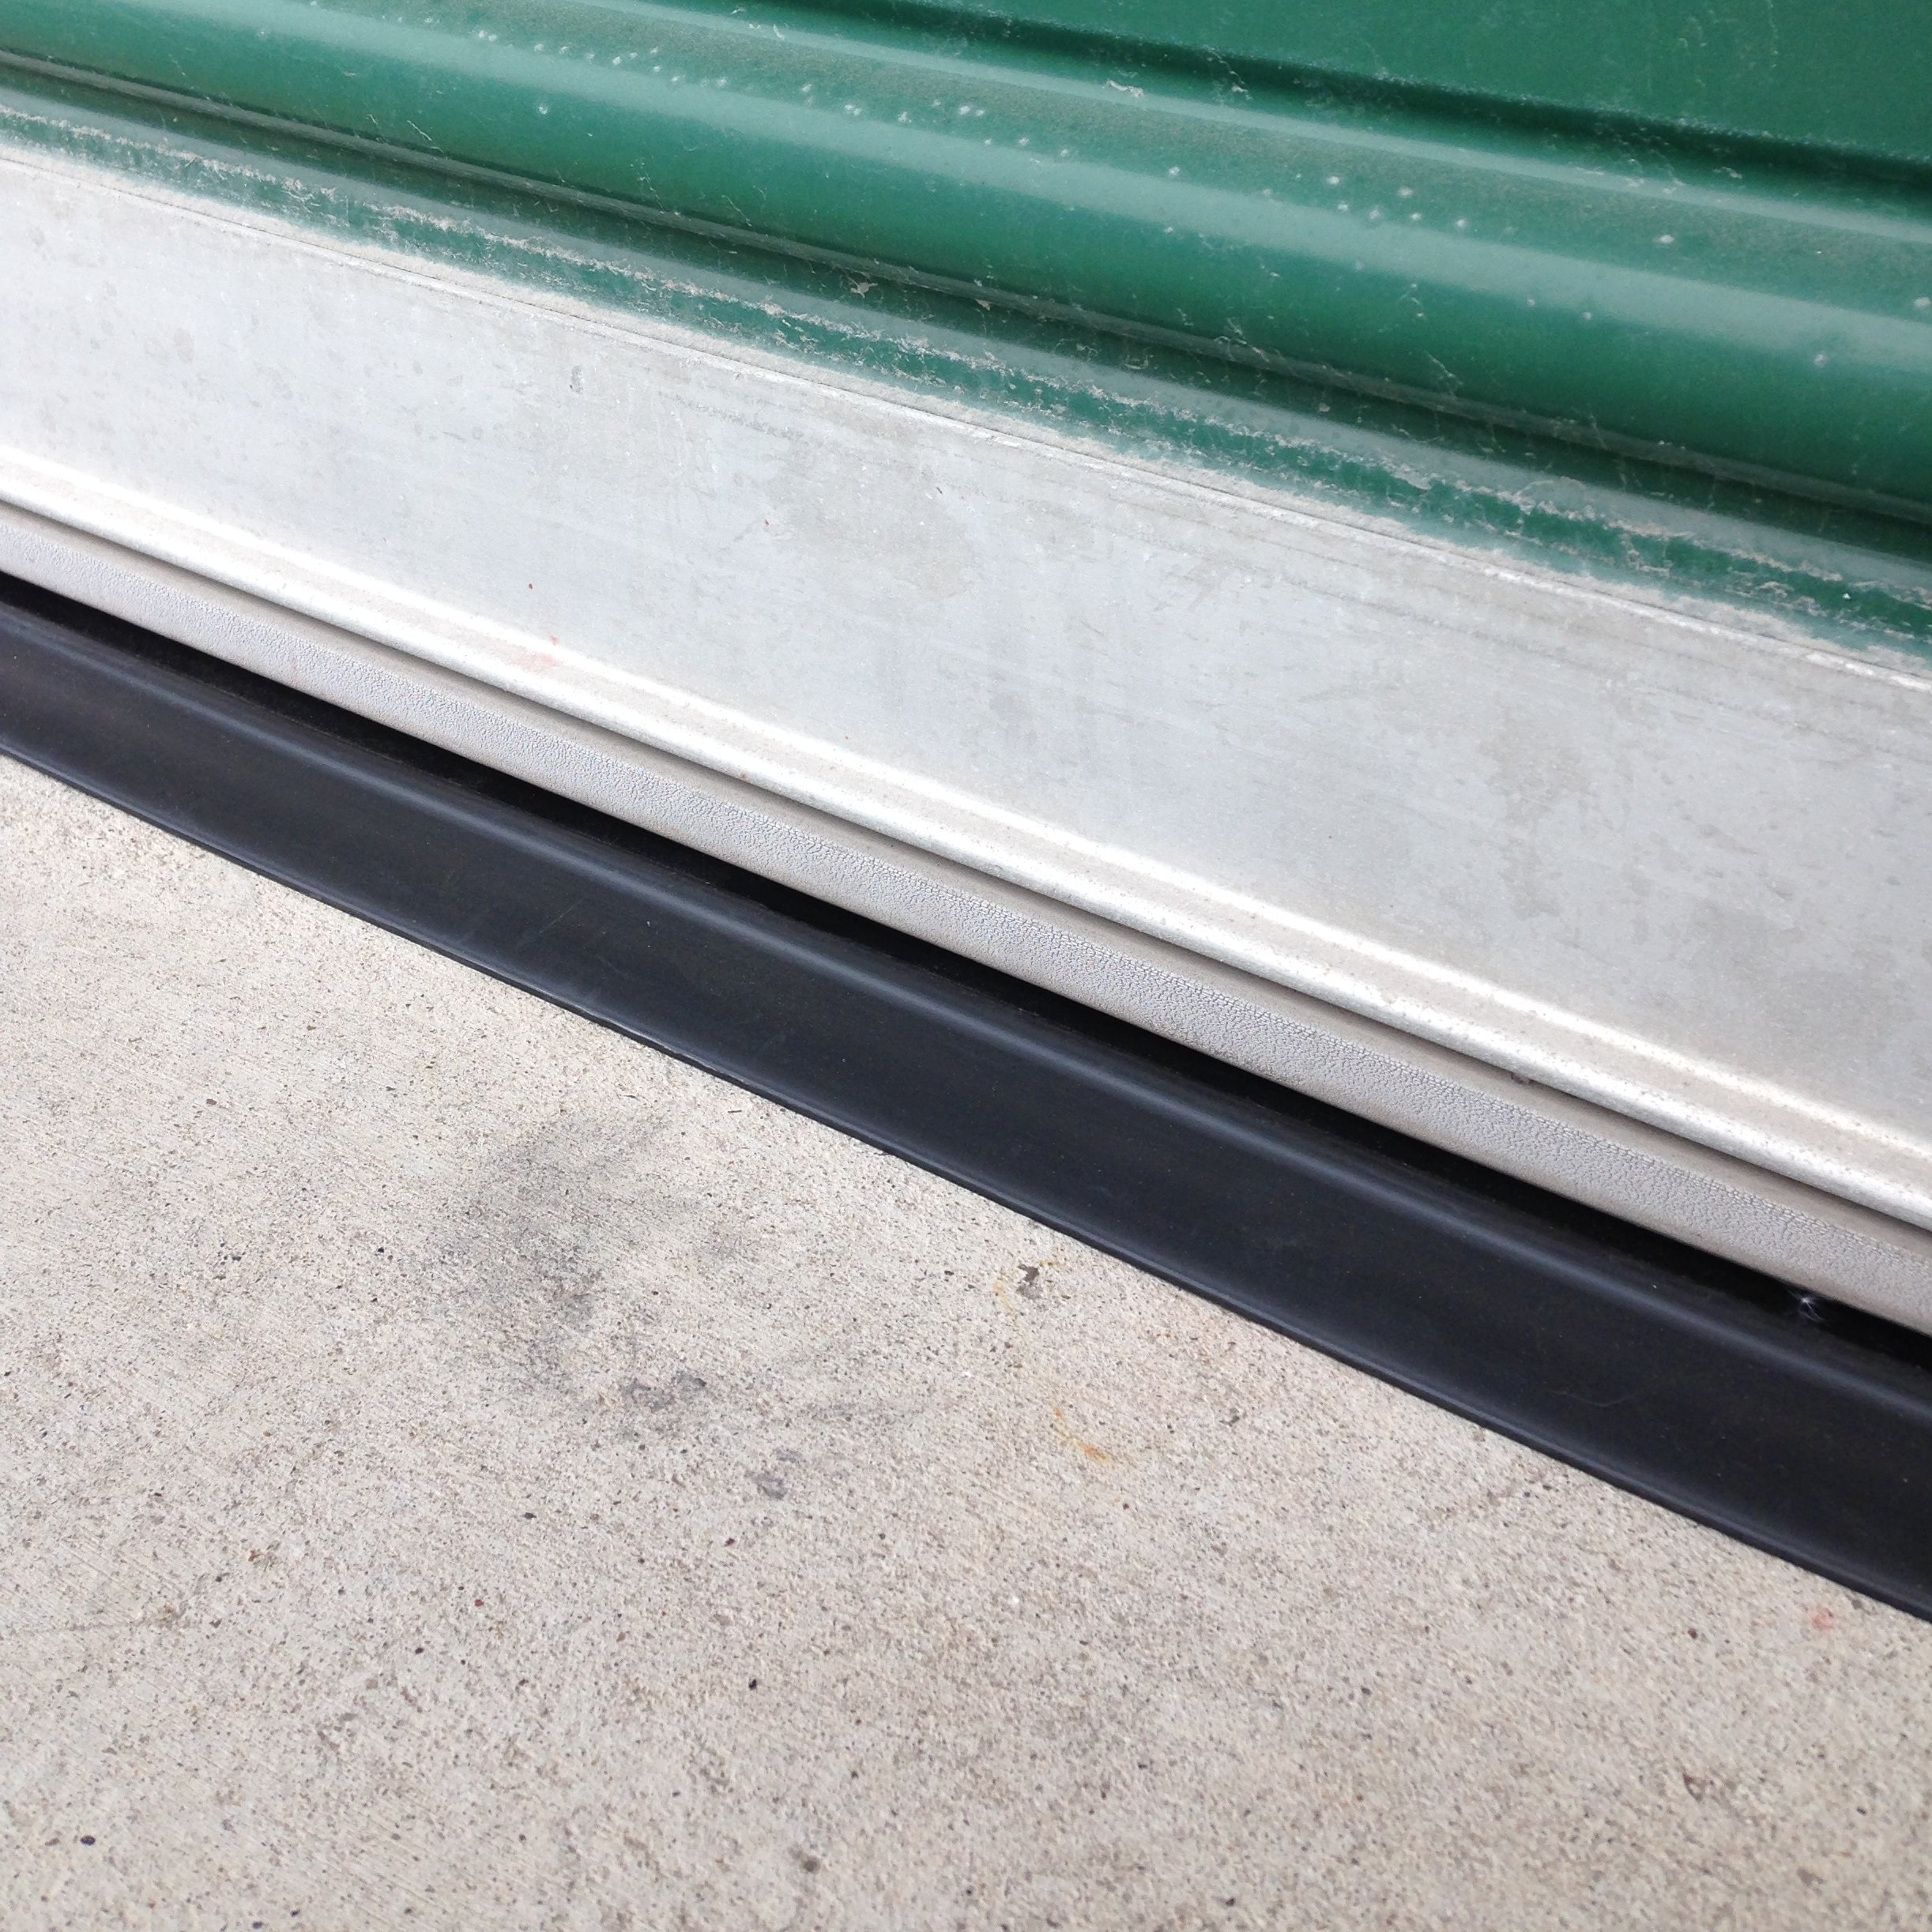 threshold-garagedoor.jpg & Garage Door Threshold | Xtreme Weather Guard Garage Door Threshold Seal